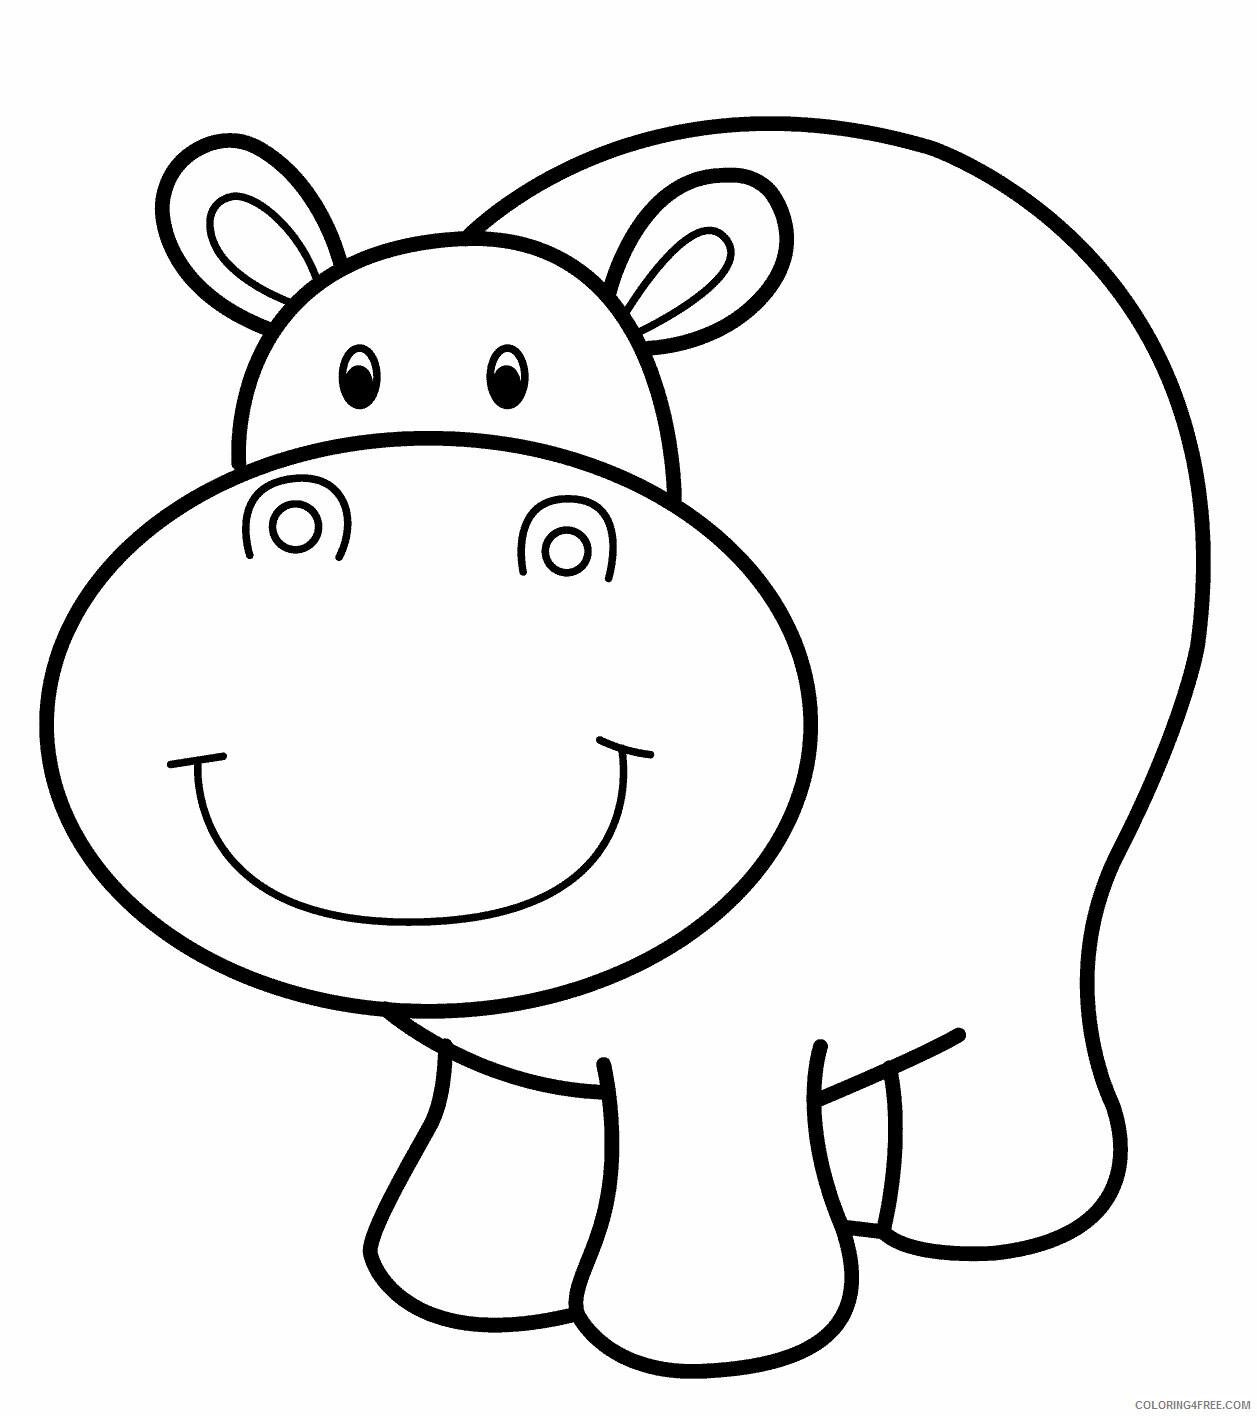 Hippopotamus Coloring Pages Animal Printable Sheets Hippo Free 2021 2701 Coloring4free